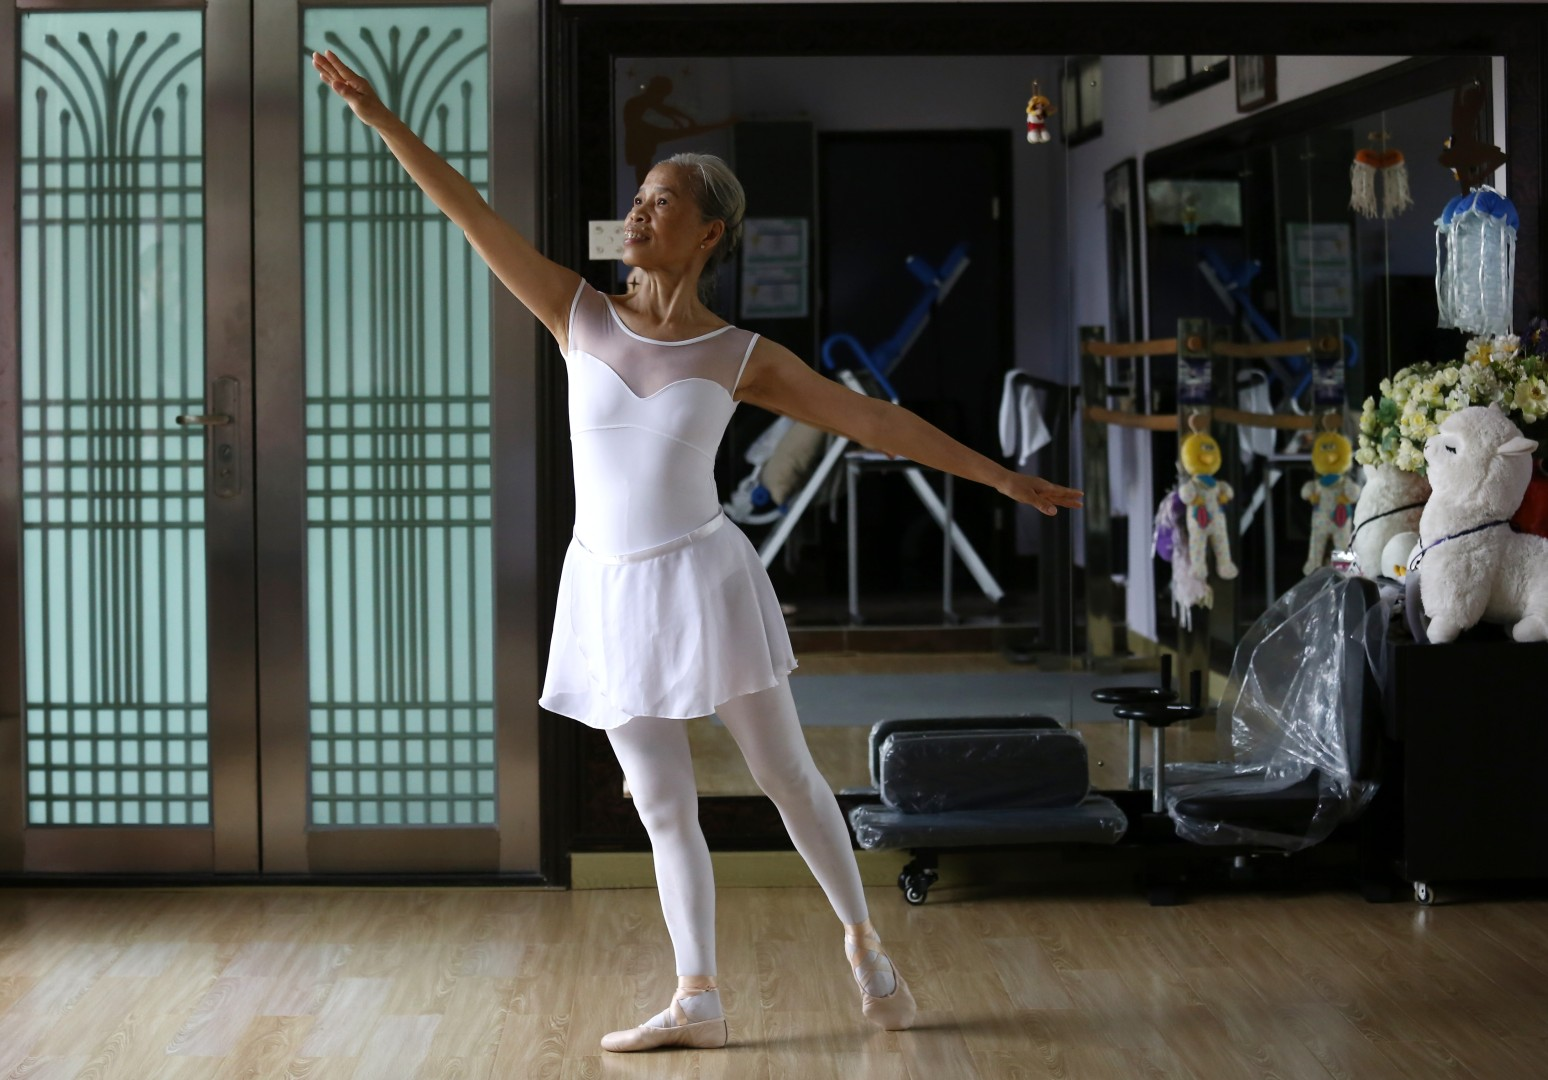 04ef8b2386 'If I can open my eyes, I'll keep dancing': 70-year-old ballerina Carmen  Leung relives her childhood dream after a lifetime caring for family    South China ...